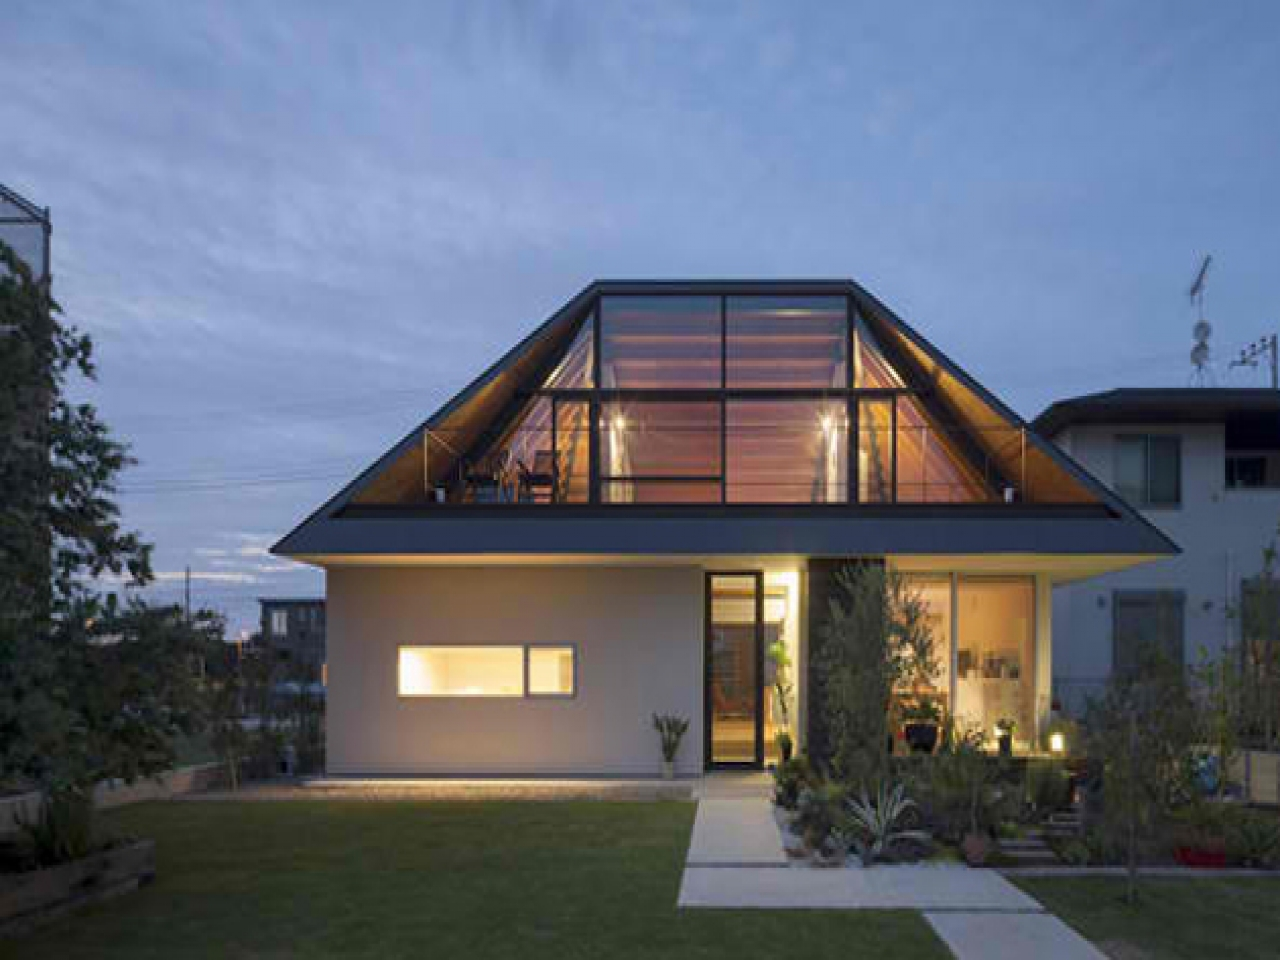 Roof Design Ideas: Flat Roof Modern House Designs Flat Roof Design Detail